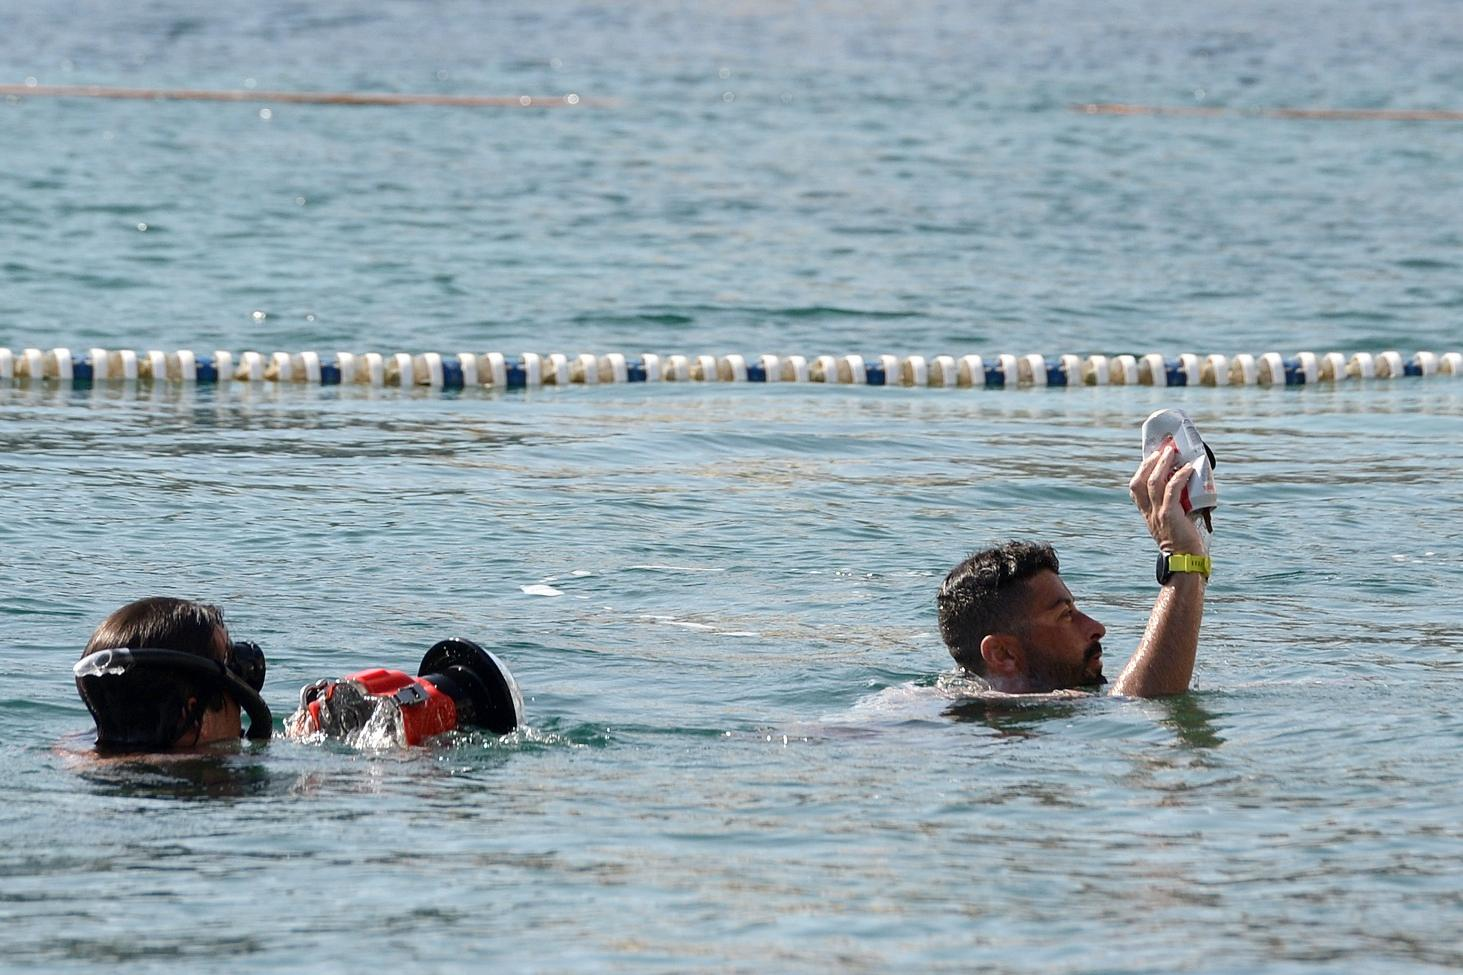 Neil Agius picks up rubbsh from the sea as he completes his swim in Balluta Bay on Friday morning. Photo: Matthew Mirabelli